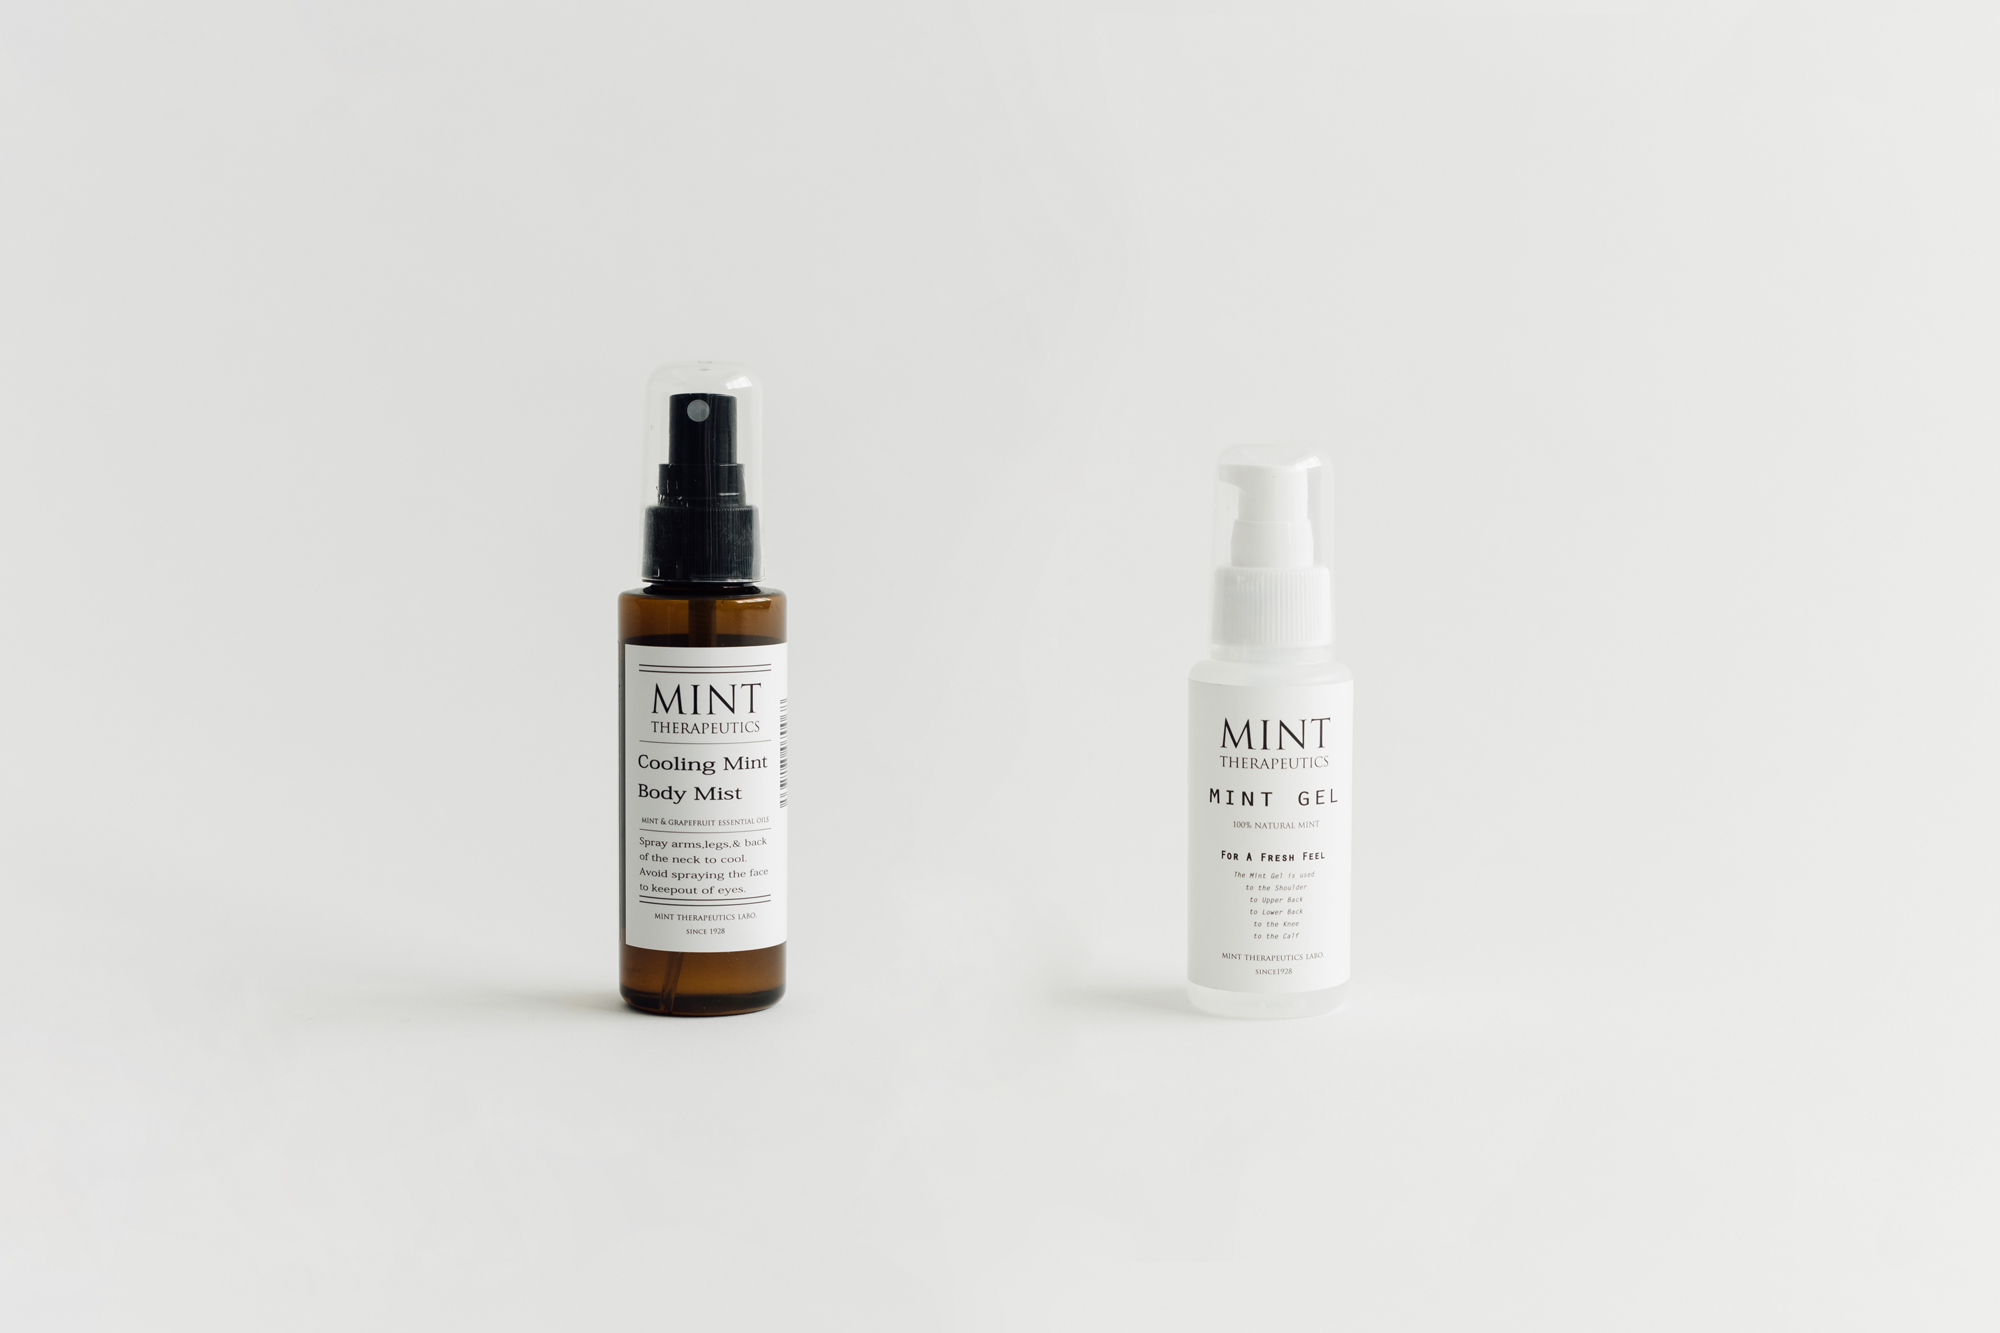 Mint Therapeutics Labo. ミントジェル